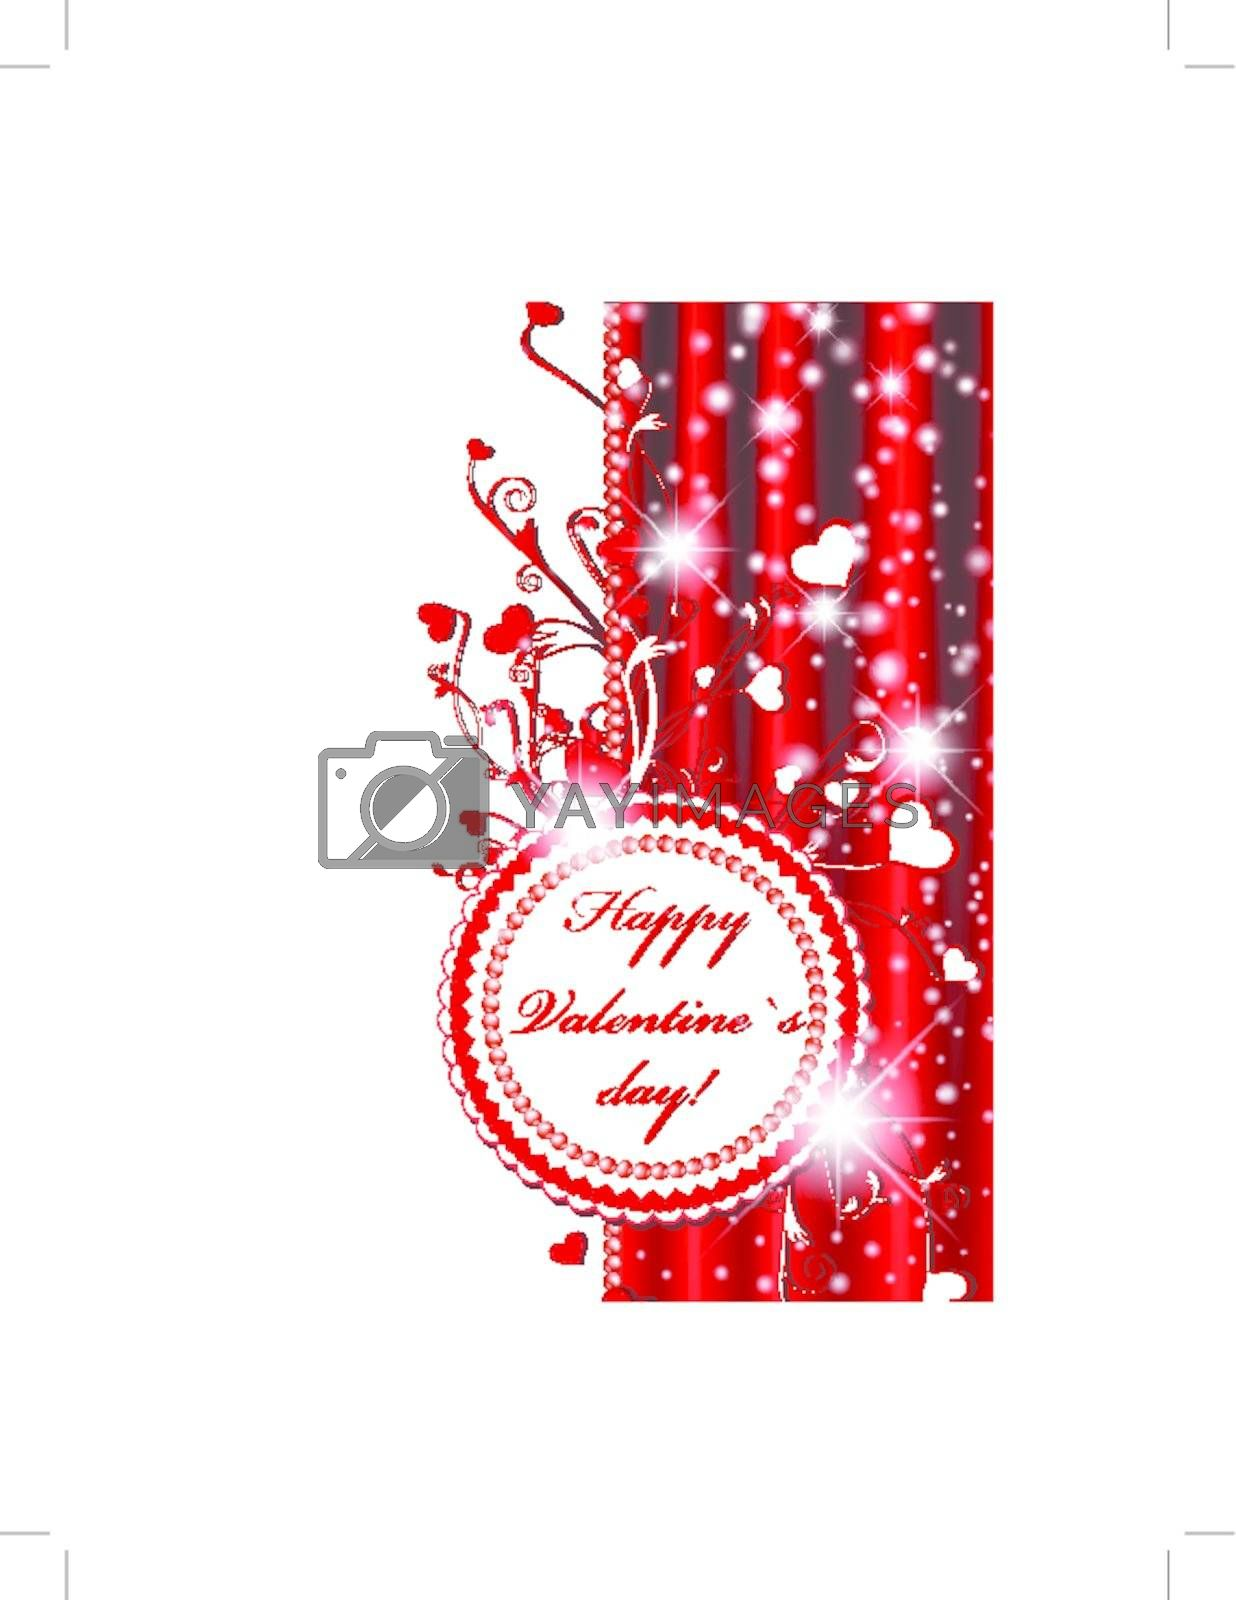 Valentine`s day label over red drapery with hearts and stars, copyspace